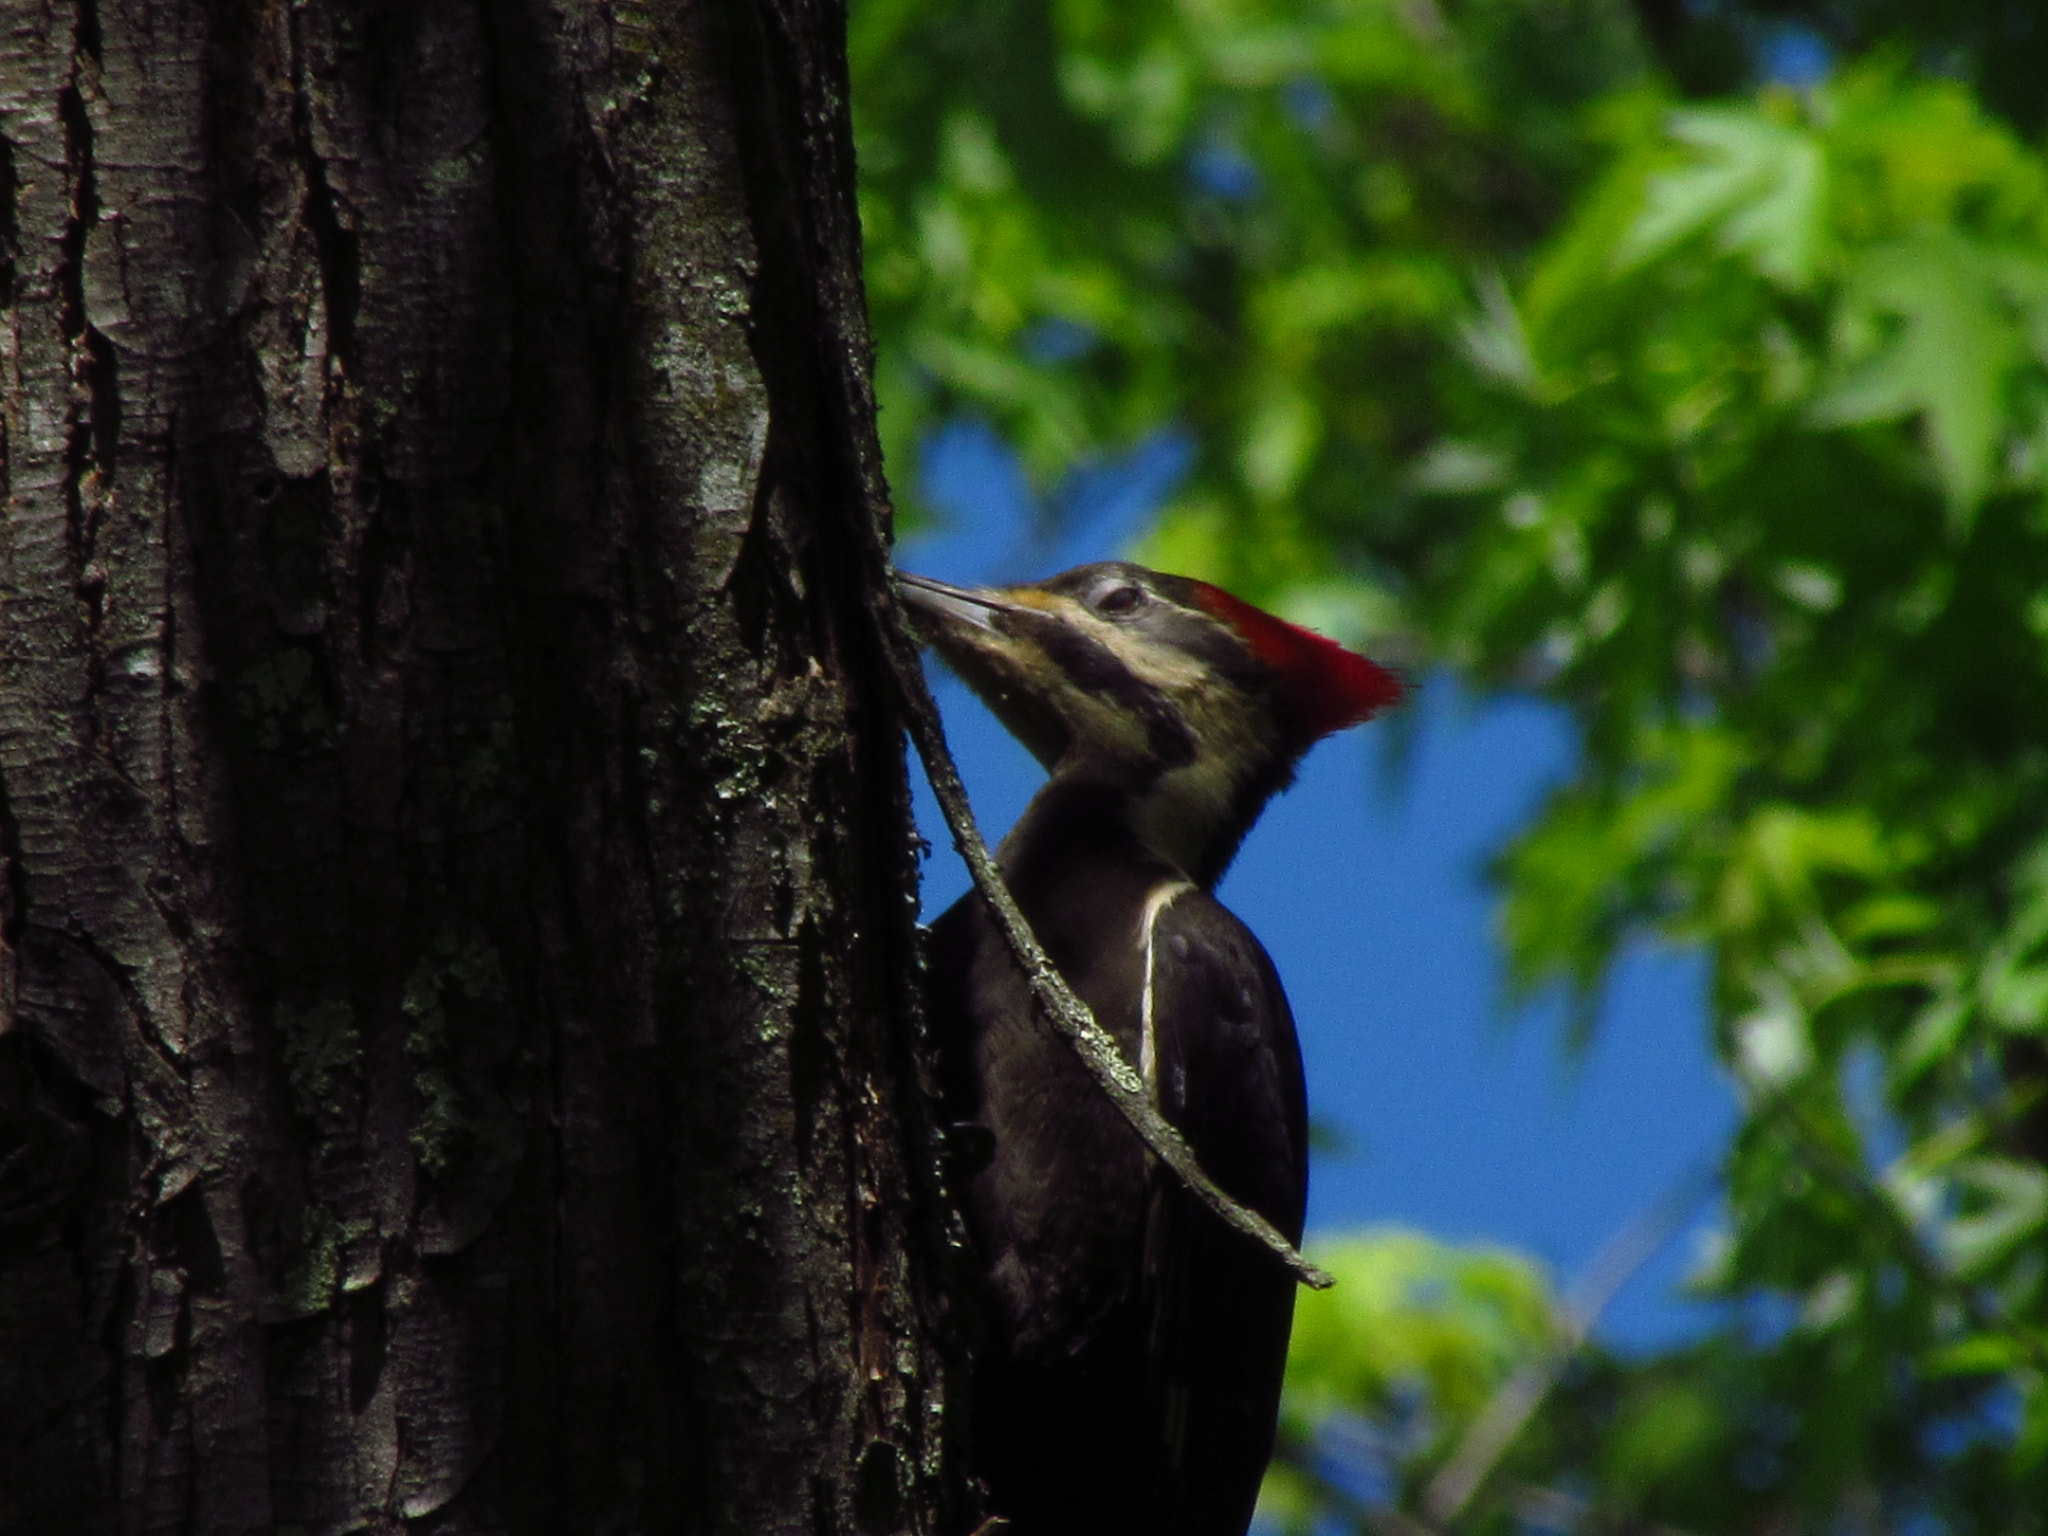 Photograph Pilated Woodpecker Up close... by Palmer Allen on 500px